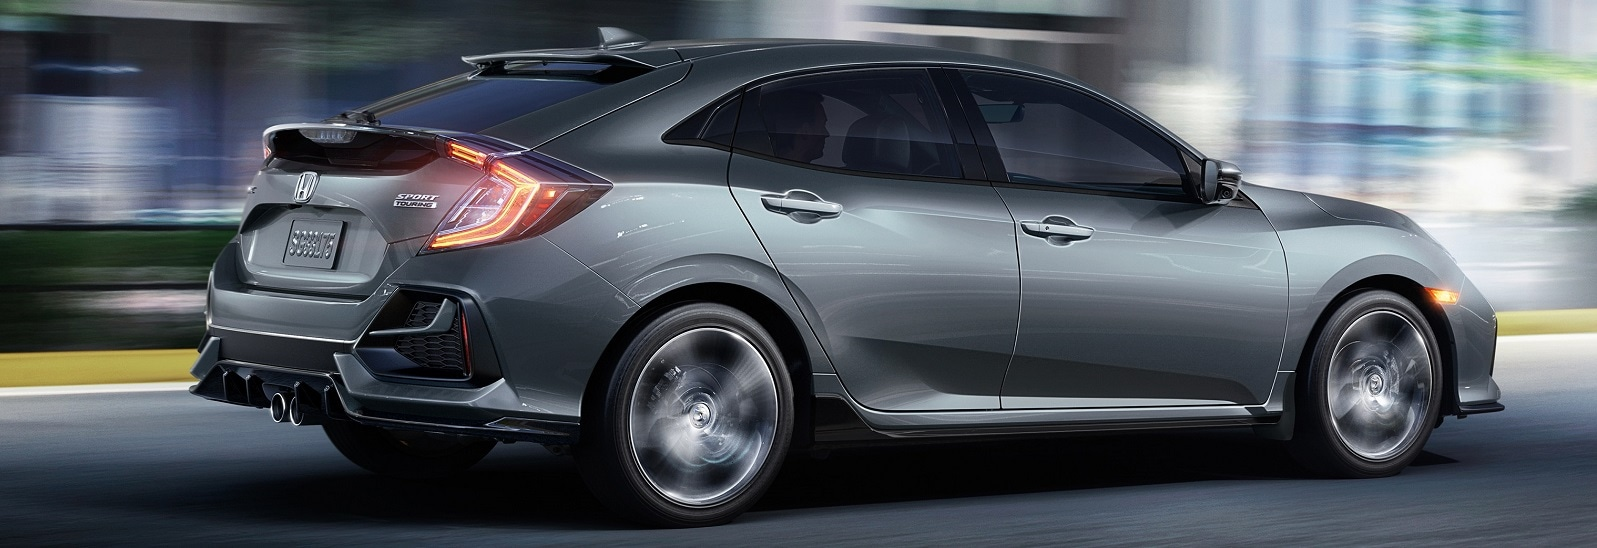 New Honda Vehicles for Sale in Edmonton, AB